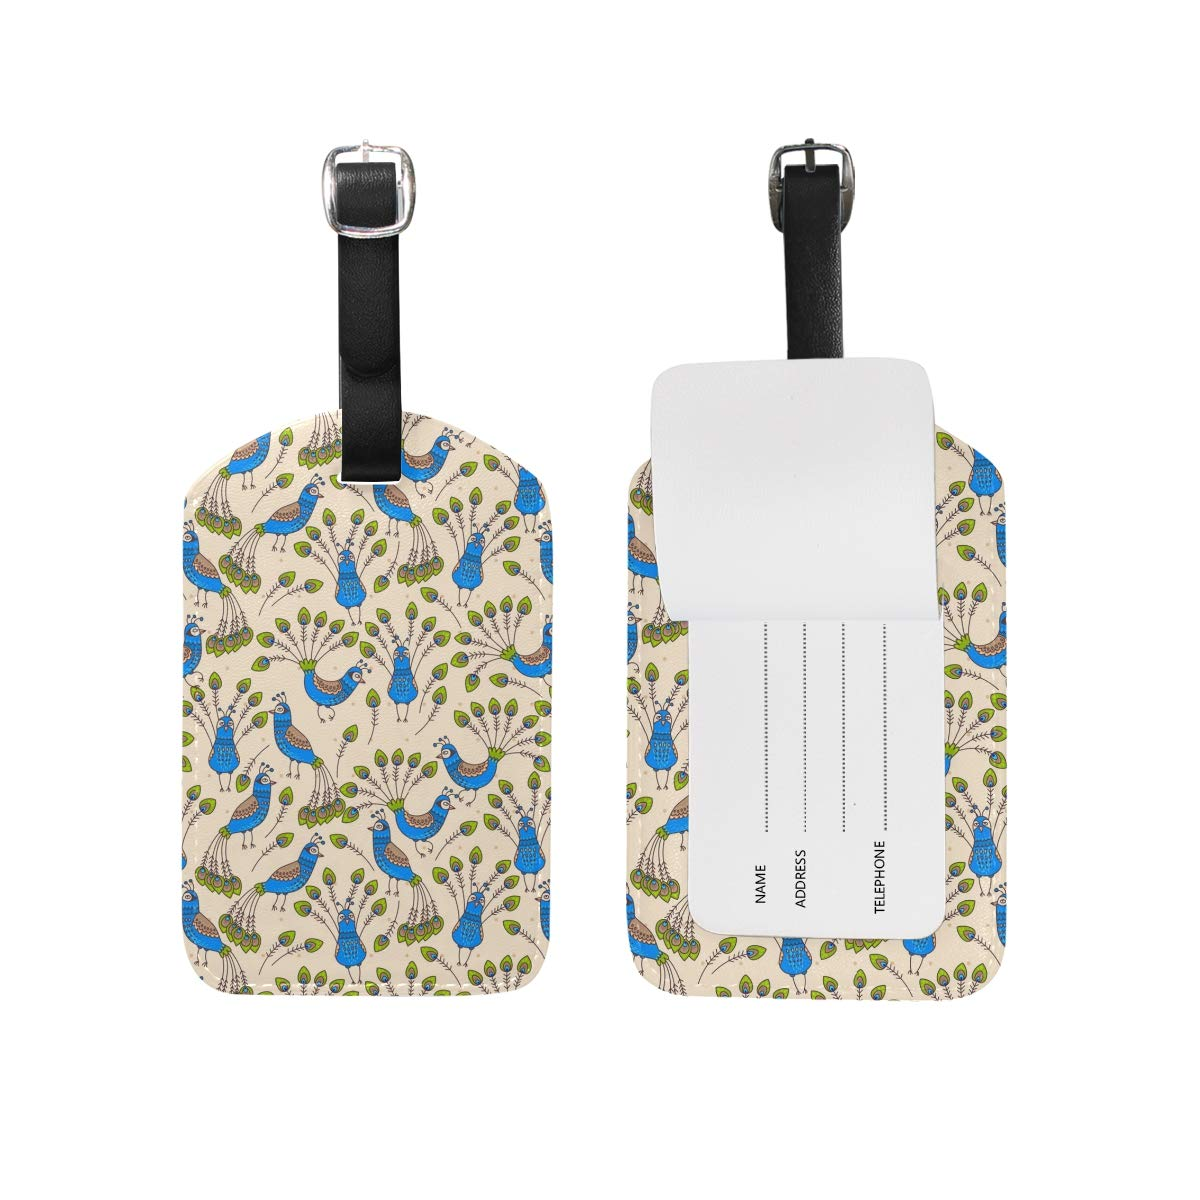 Peacock And His Feathers Sling PU Leather Luggage Tag Label Suitcase Travel Accessories 1 Piece